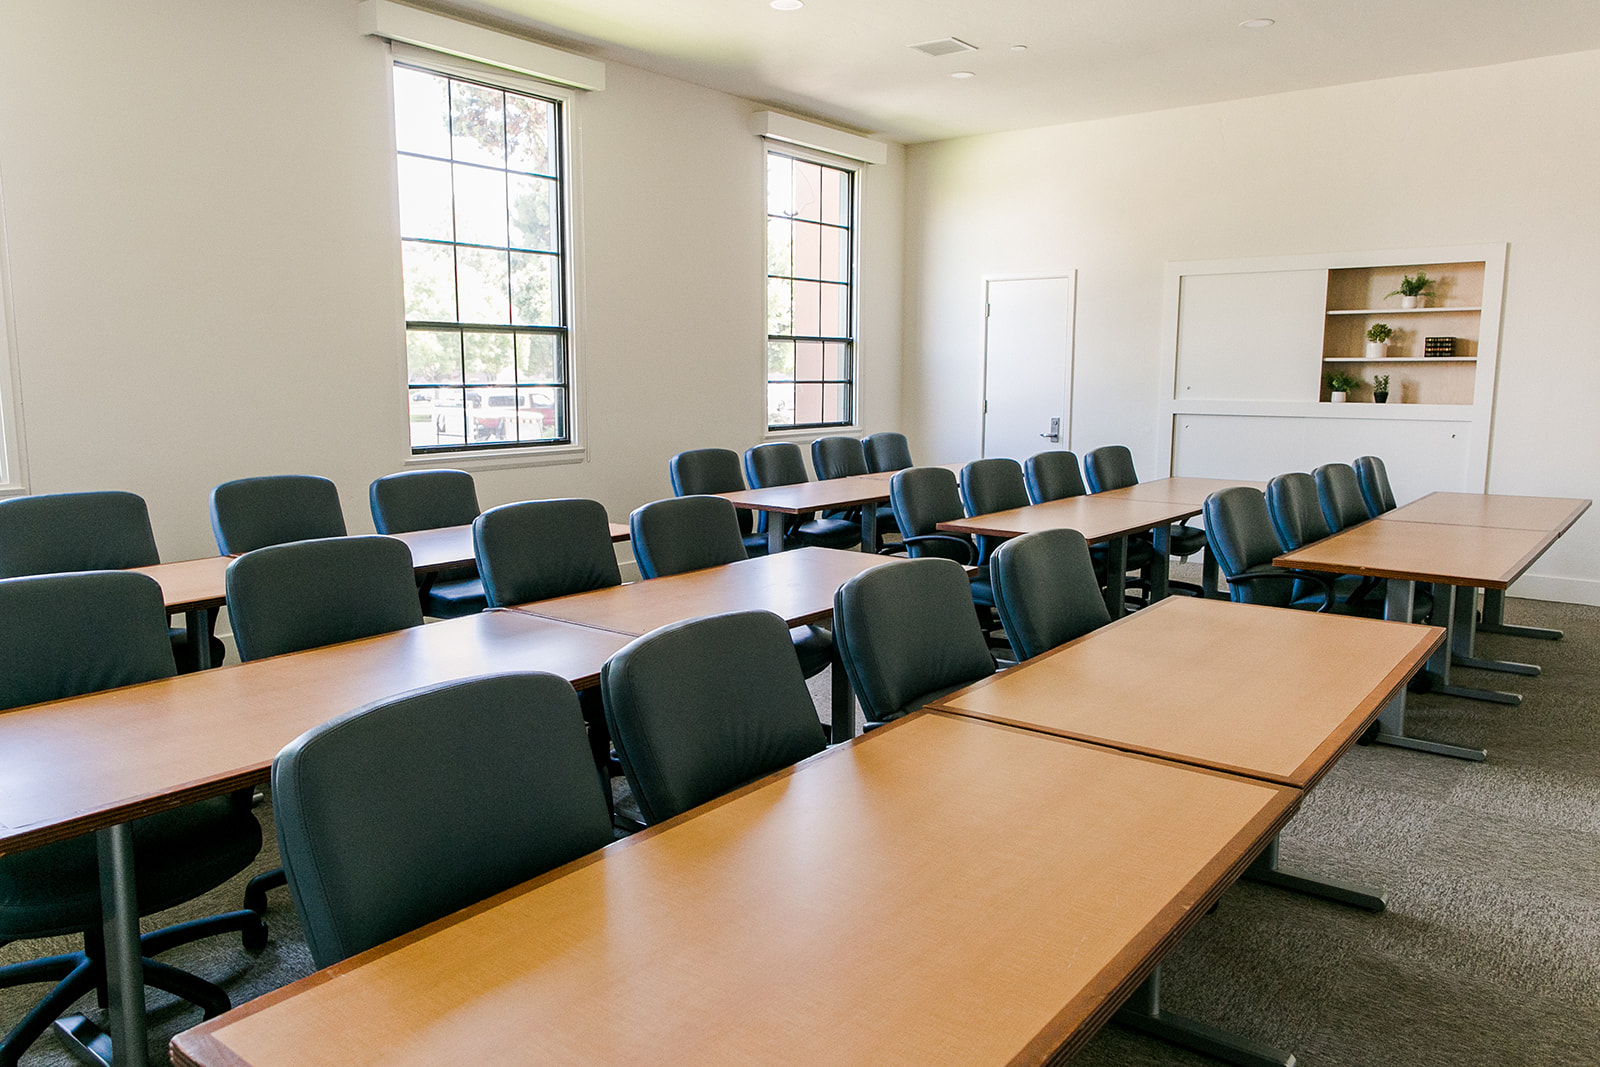 "Catalina Meeting room - Classroom style meeting room with seating for 24 guests with comfortable rolling chairs, (1) 55"" flat screen rolling TV with HDMI hookup, WiFi, and a table for coffee/food, etc. Rental is $150/hr. Please inquire for full day and non-profit rates."